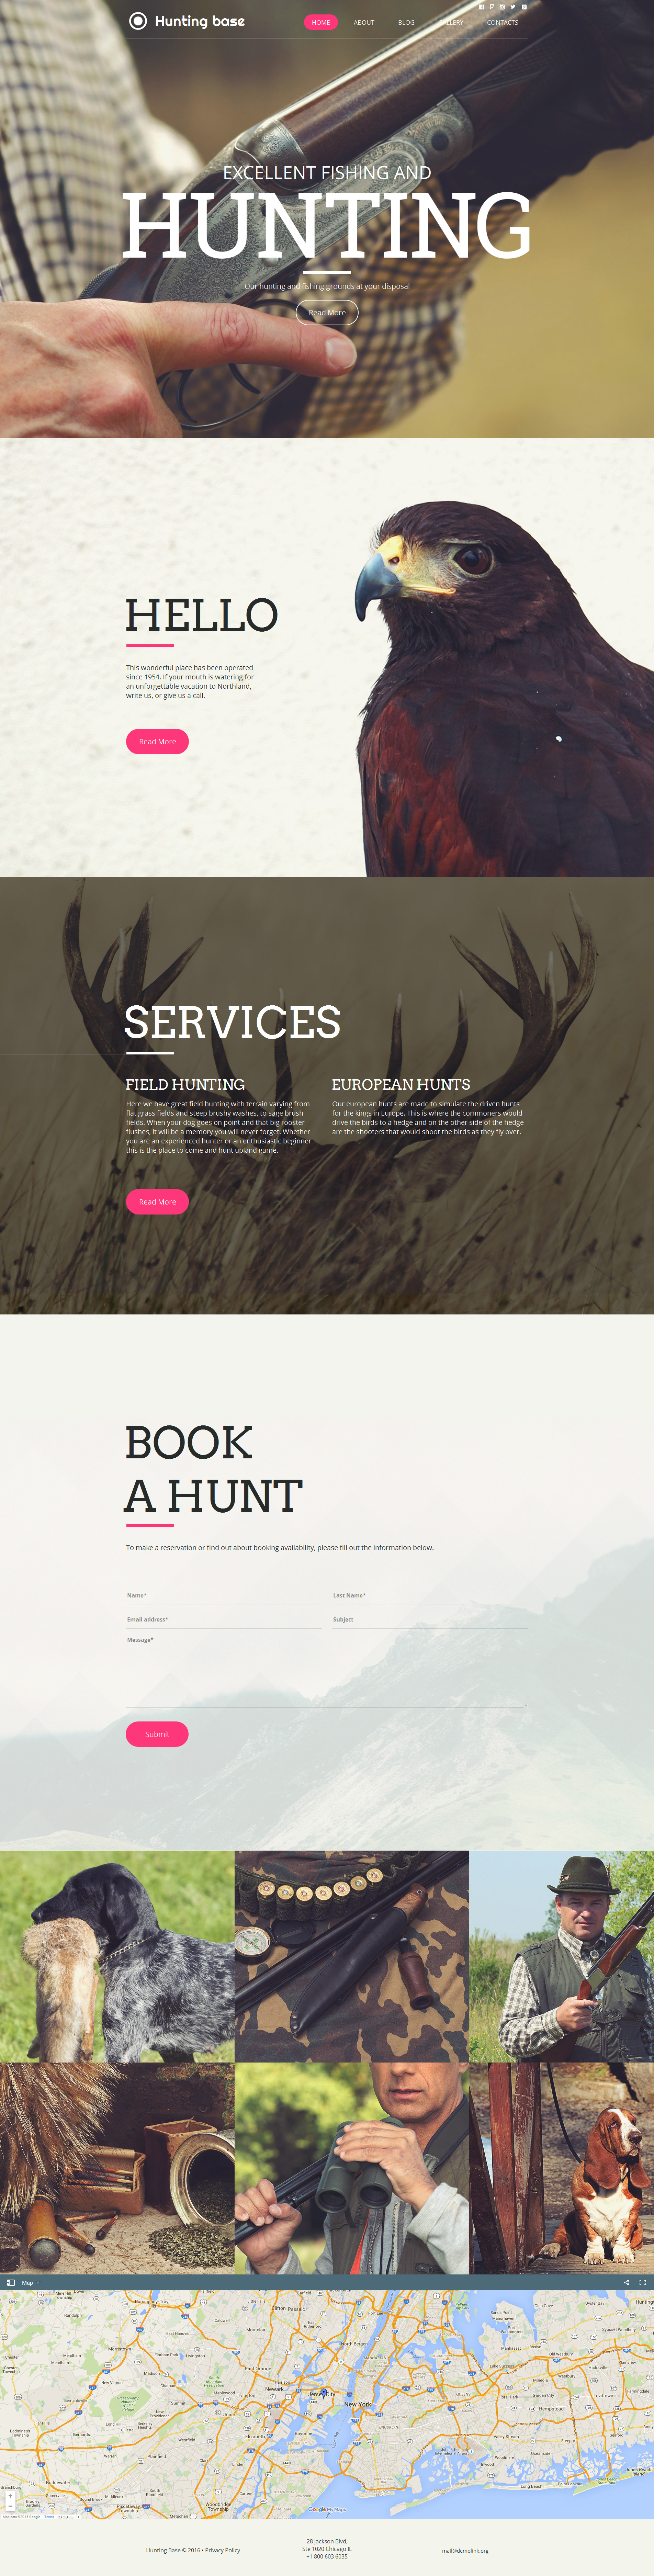 Hunting Moto CMS HTML Template